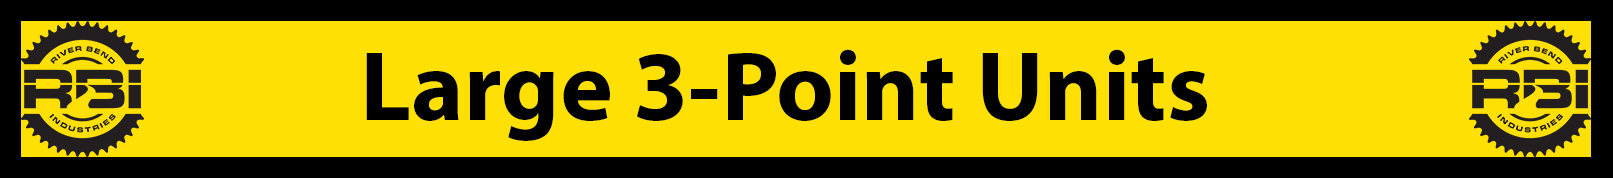 large-3-point-icon.png